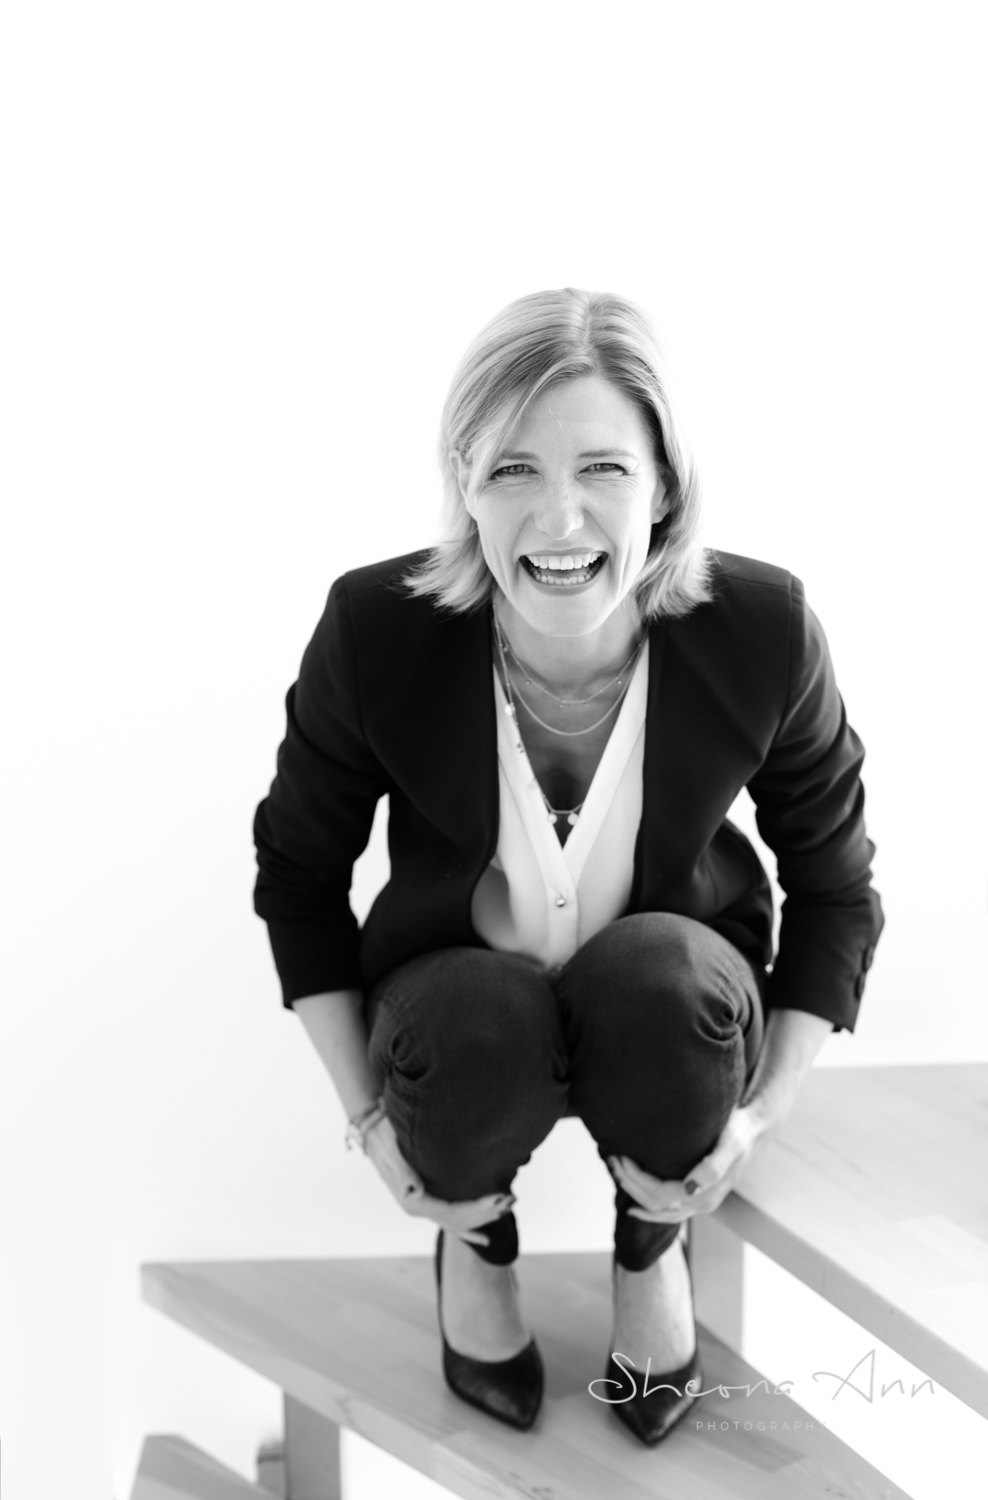 business-woman-laughing-b&w-portrait-Sheona-Ann-photography (1 of 1).jpg